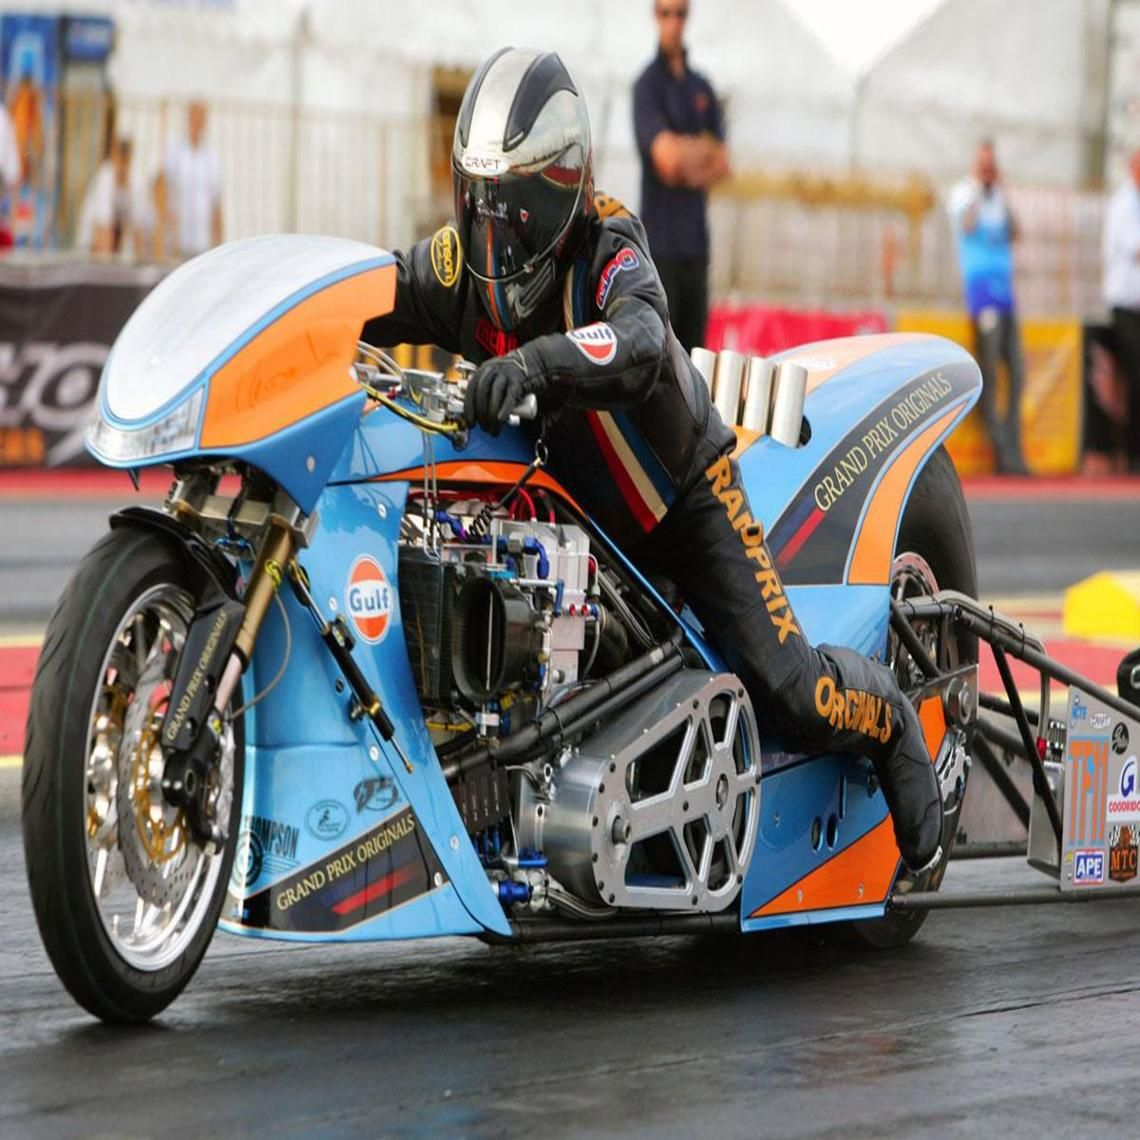 Victory Gulf Top Fuel Bike With Images Drag Bike Top Fuel Bike